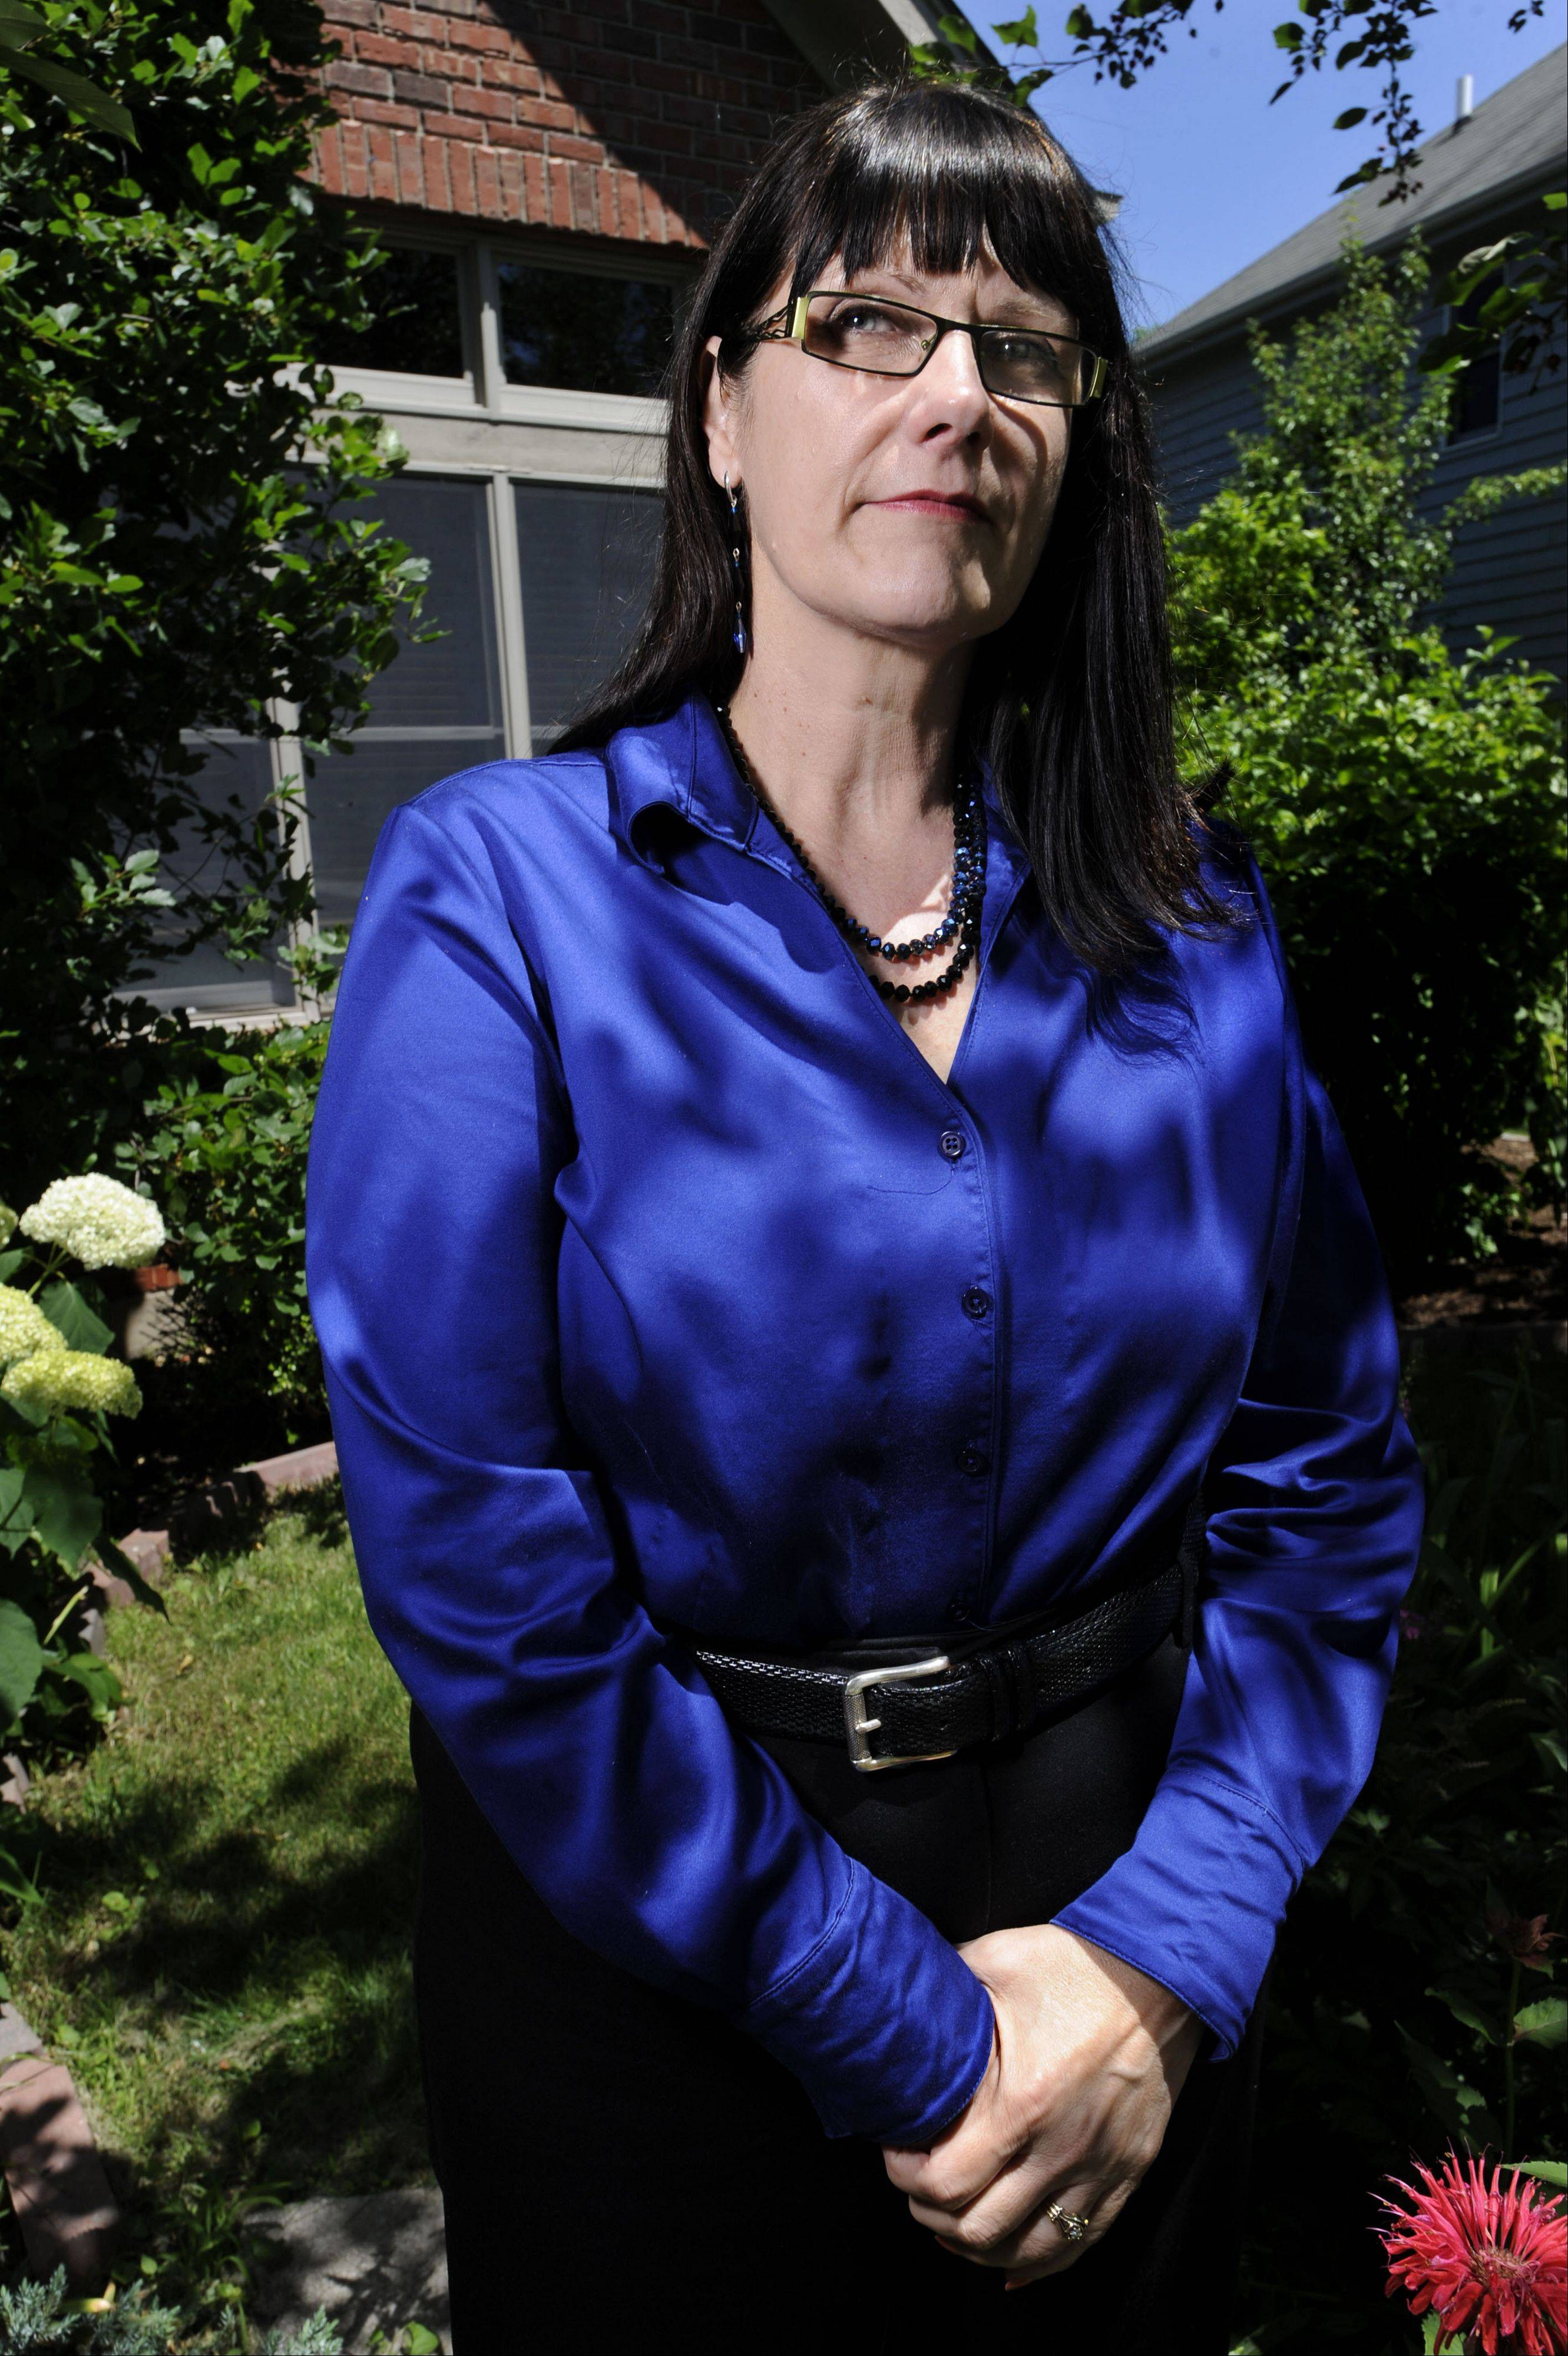 Connie Wilson, jury forewoman in the retrial of former Gov. Rod Blagojevich, at her home in Naperville on Tuesday, the day after Blagojevich was found guilty on 17 of 20 charges.